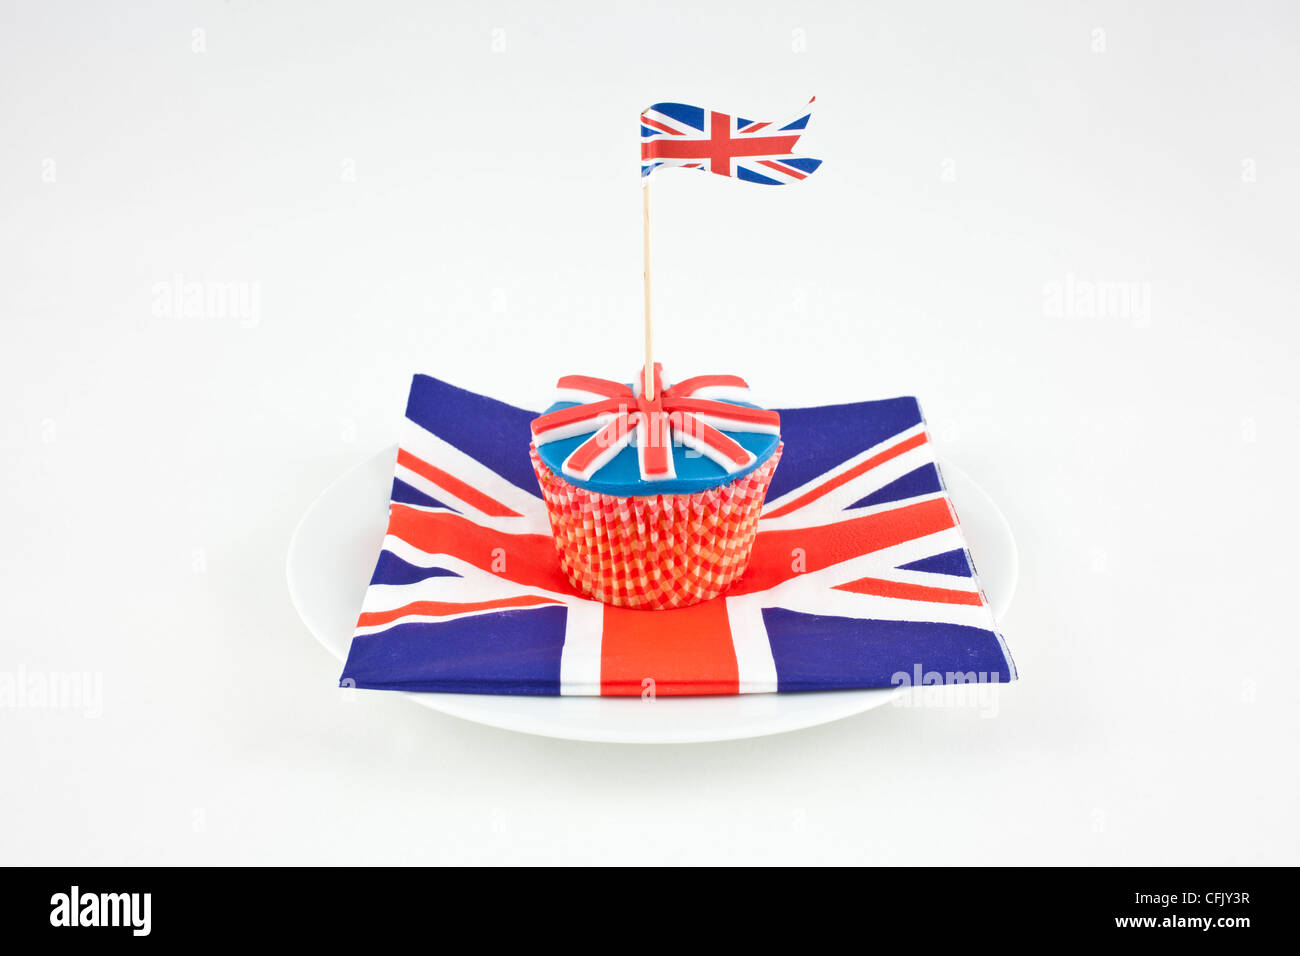 union jack flag cupcakes on a paper napkin and white plate - Stock Image